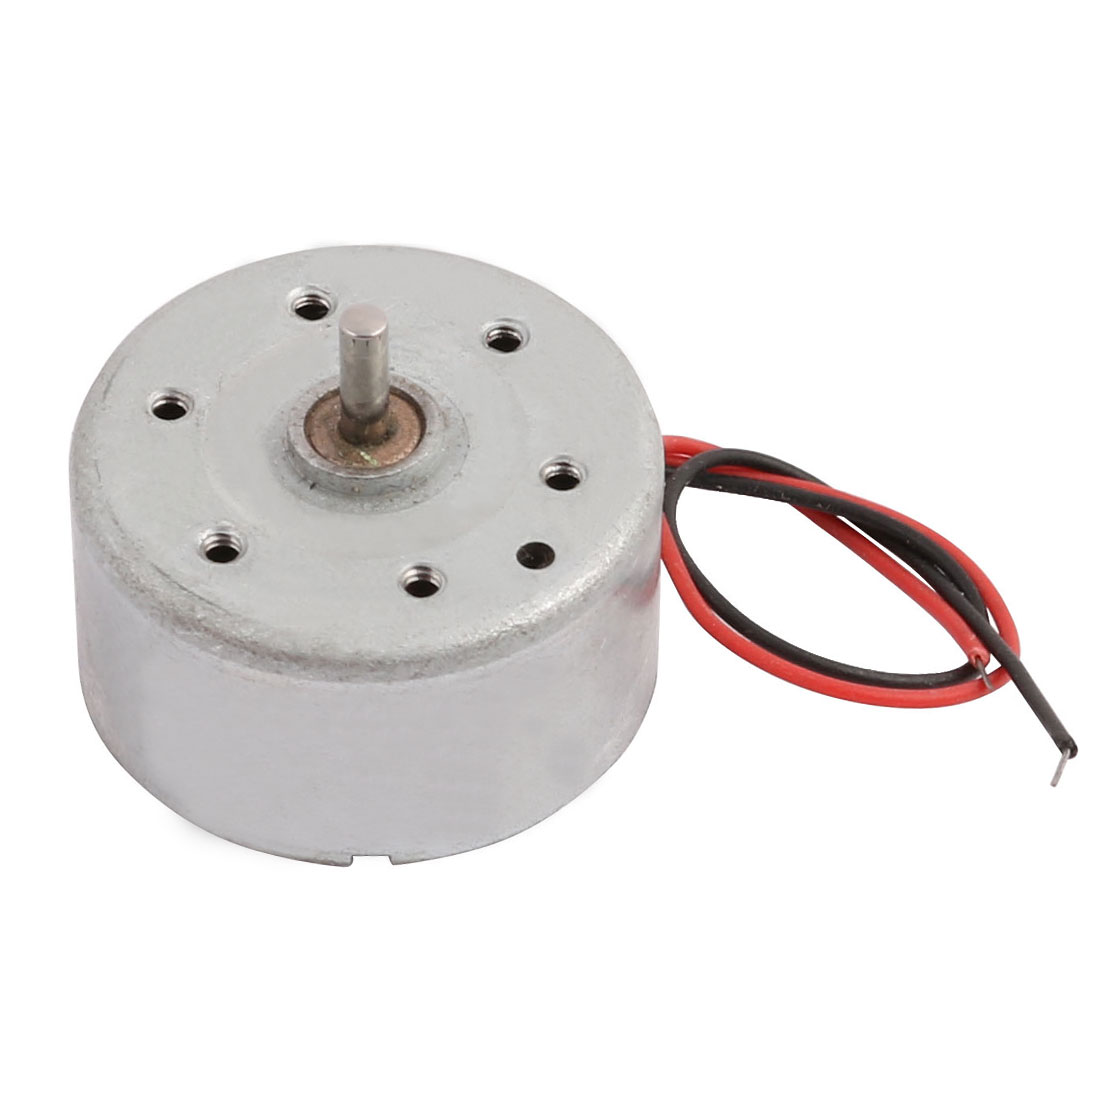 DC1.5V-6V 3500RPM Electric Airplane Magnetic Mini Motor for RC Helicopter Toy